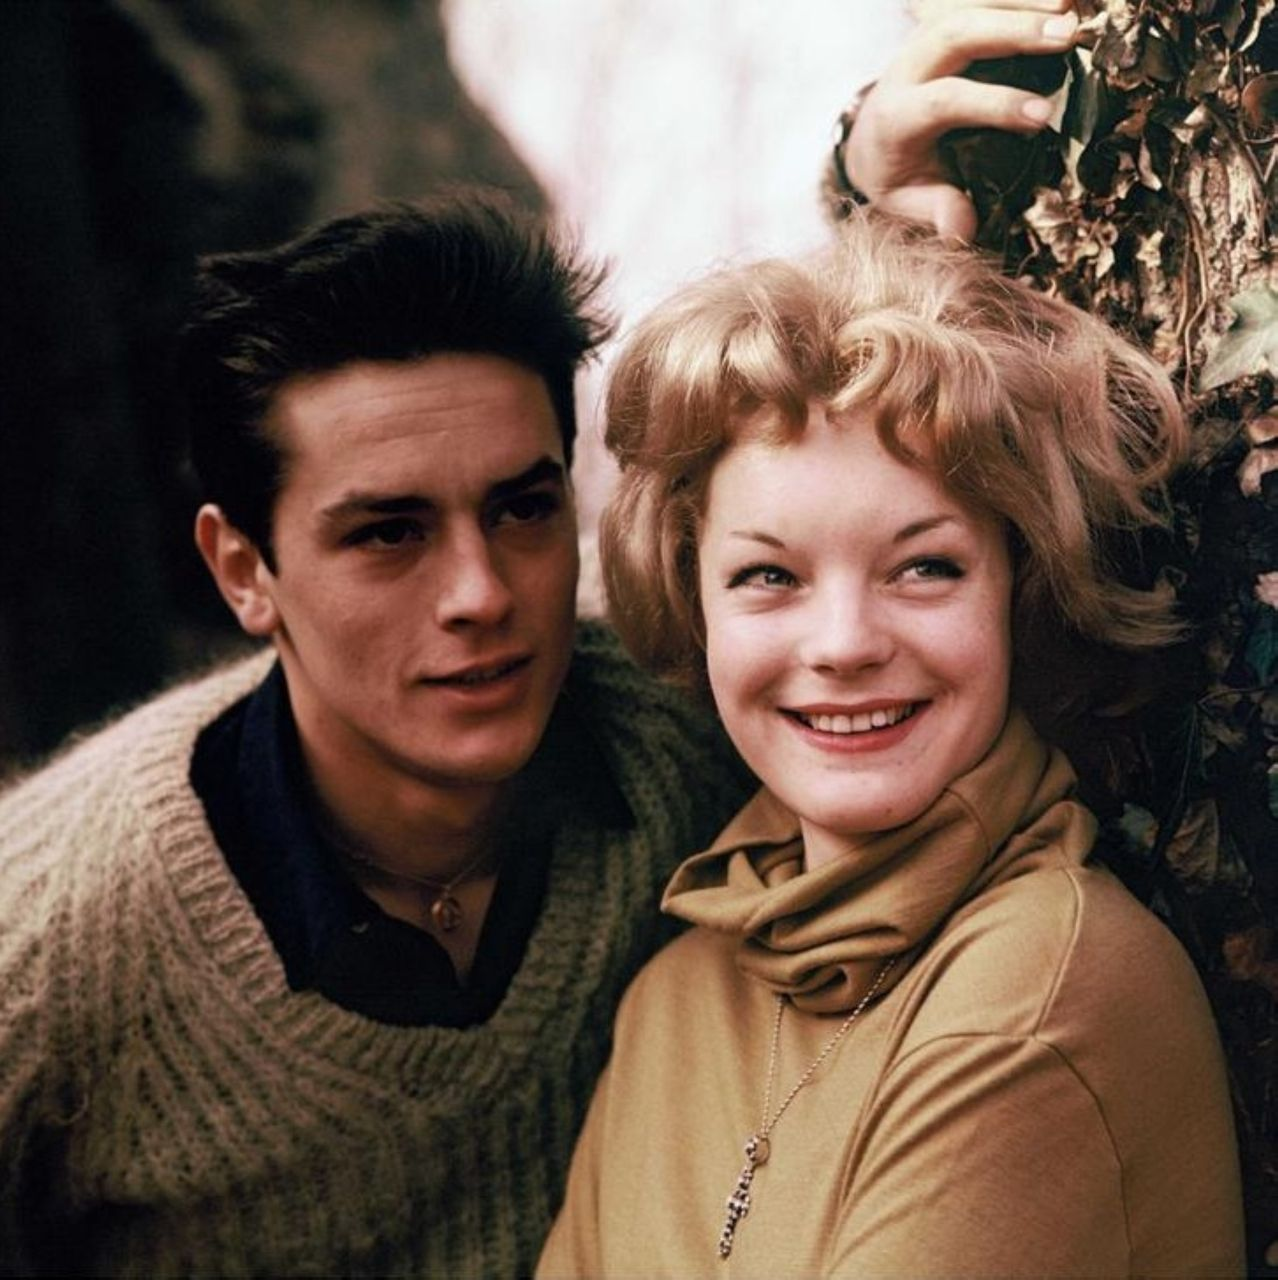 Yesterday Yes A Day With Images Alain Delon Romy Schneider